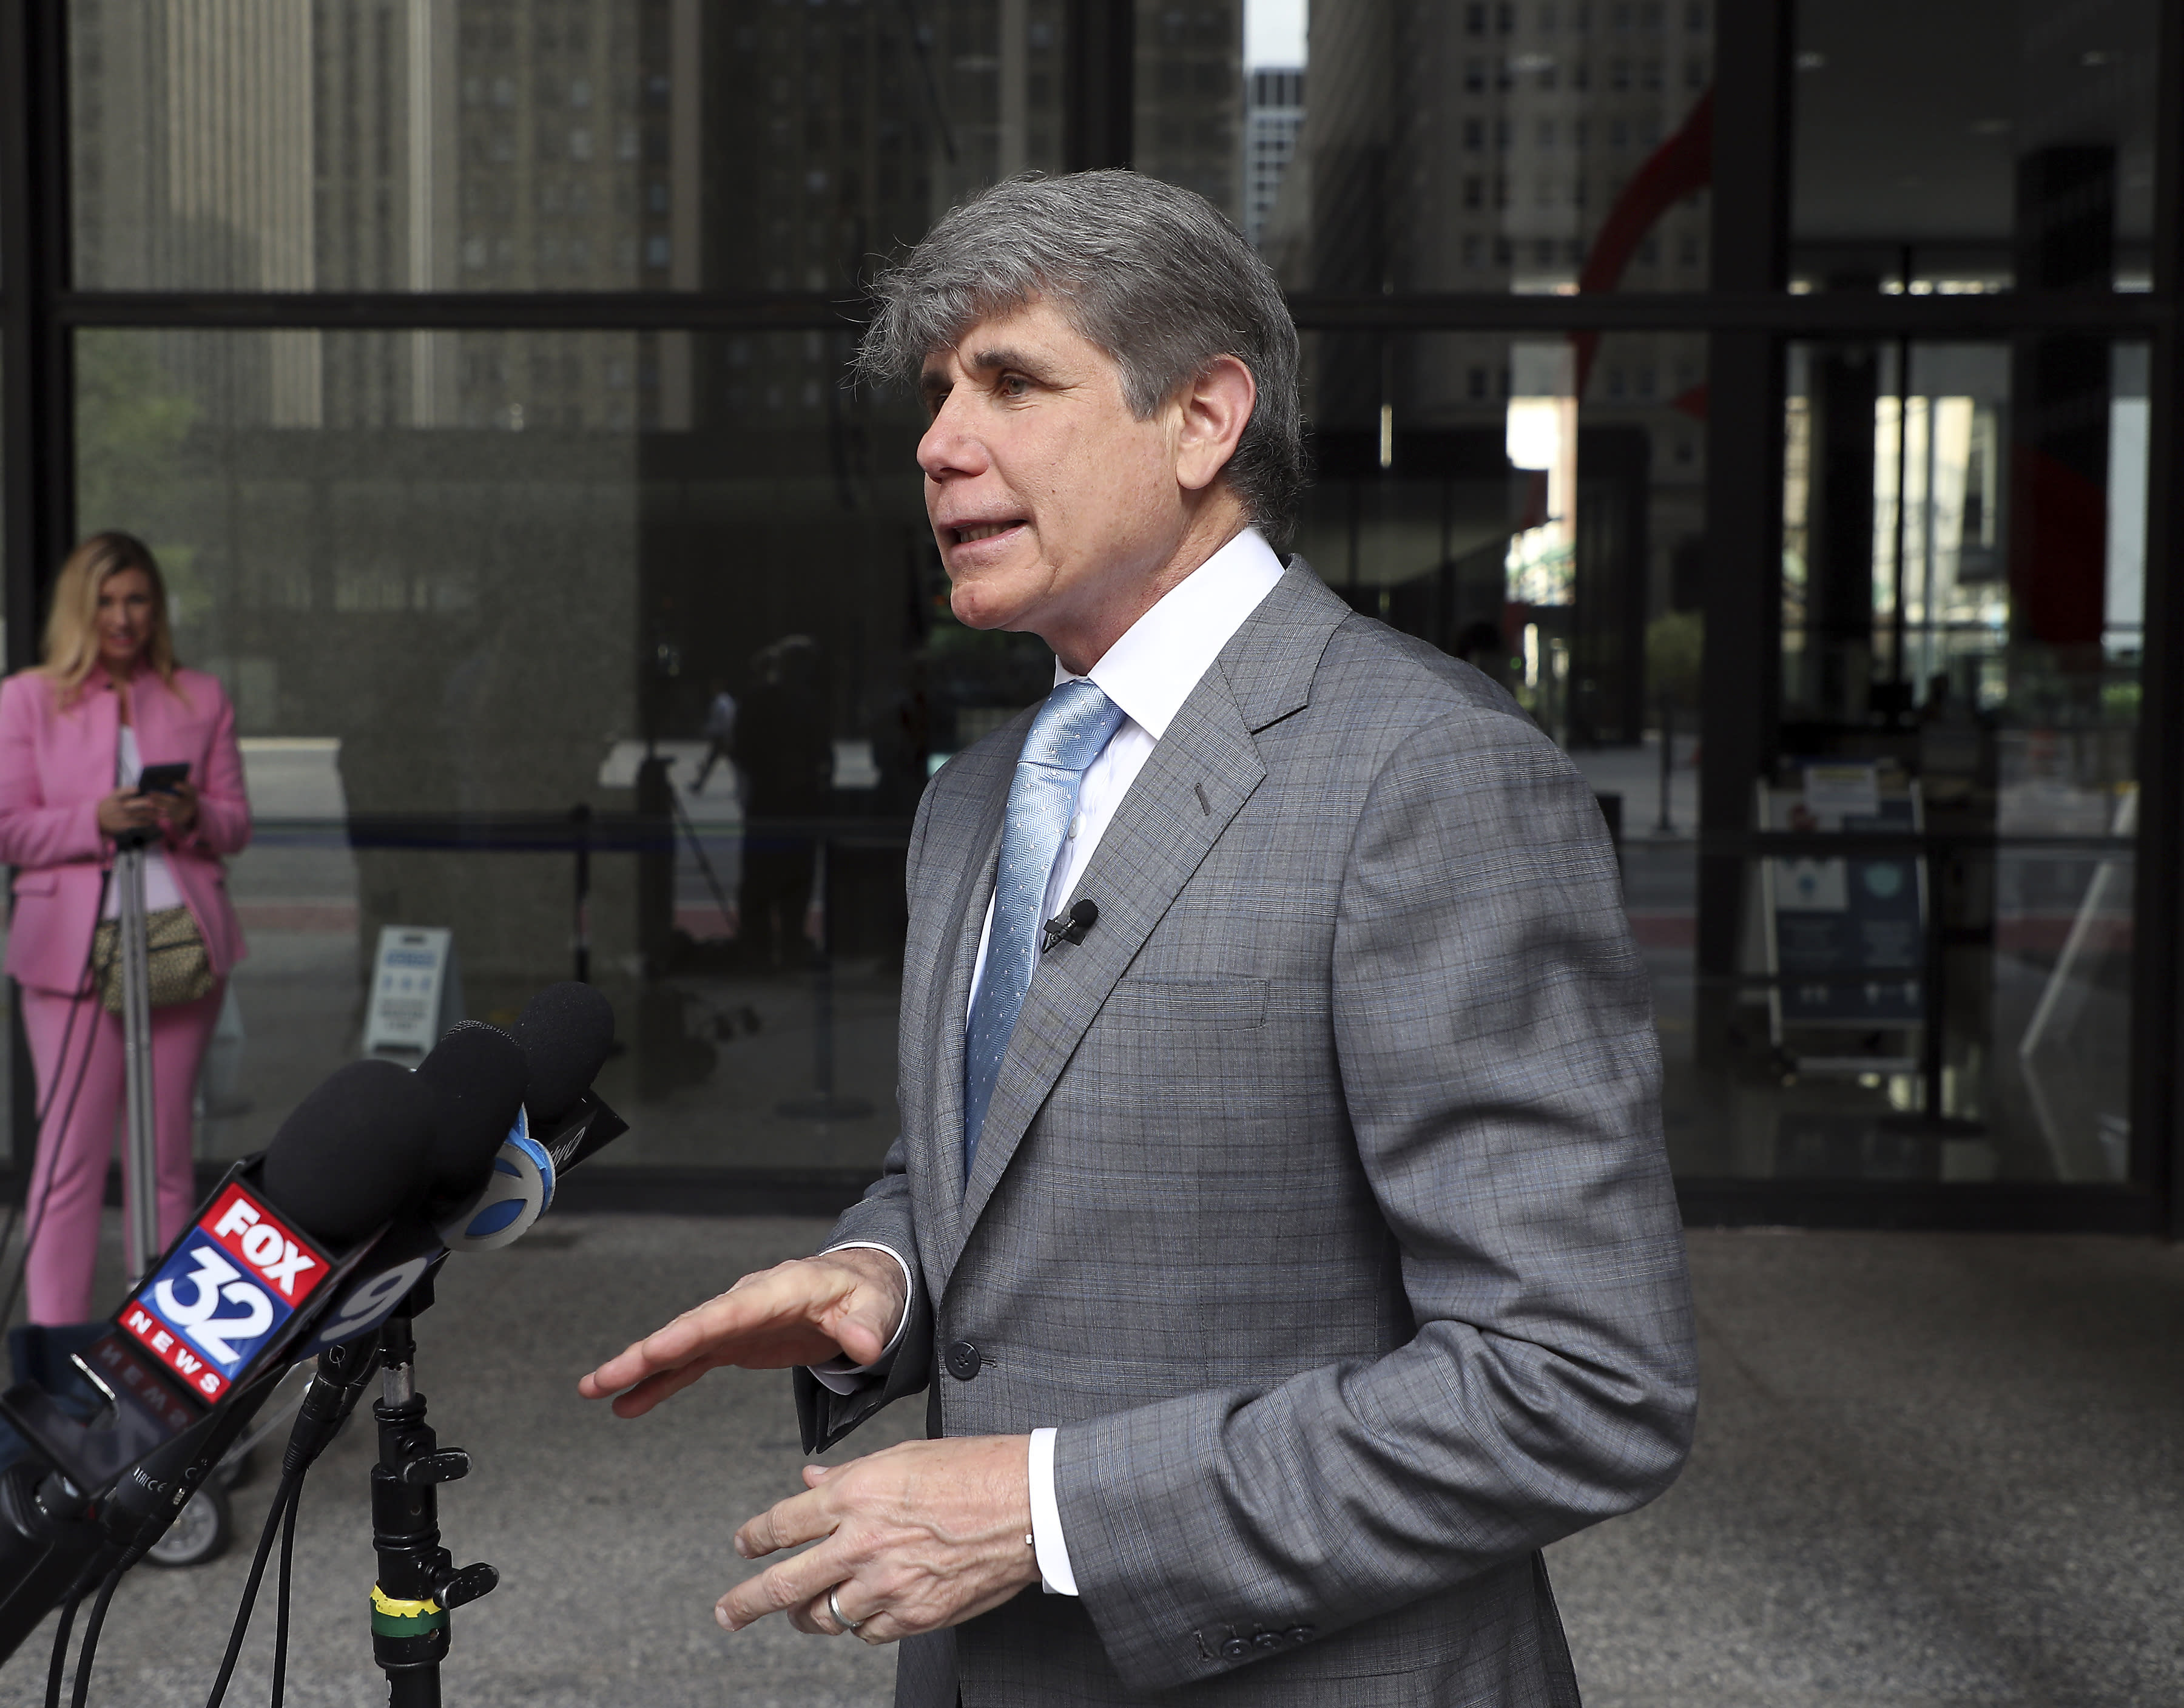 'I'm back': Ex-con Blagojevich sues for right to run again